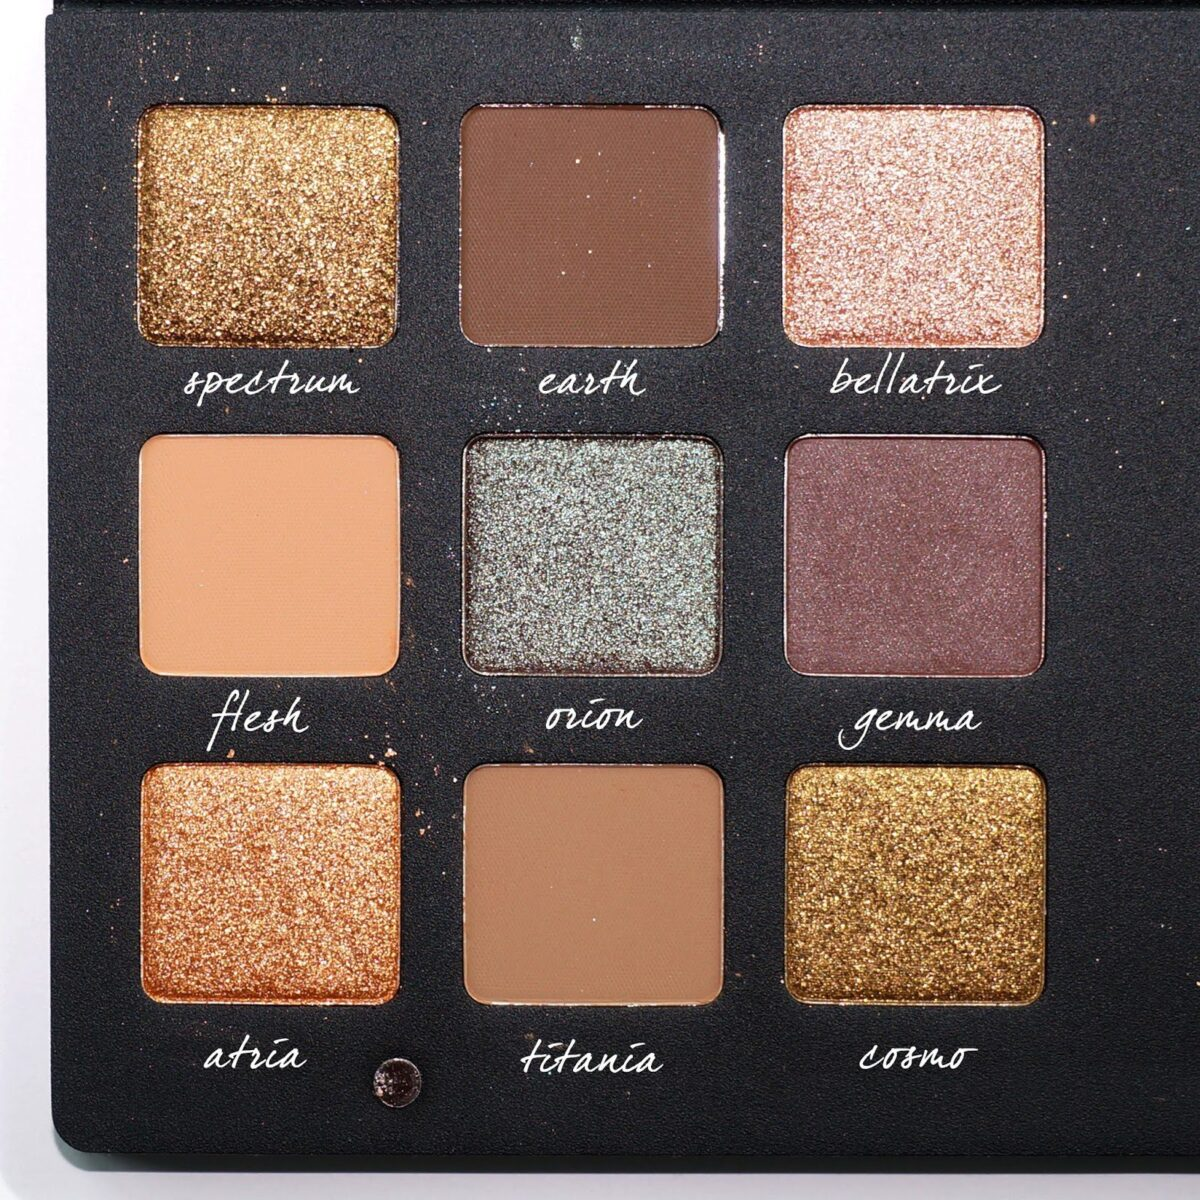 natasha denona new star palette star inspired eyeshadows